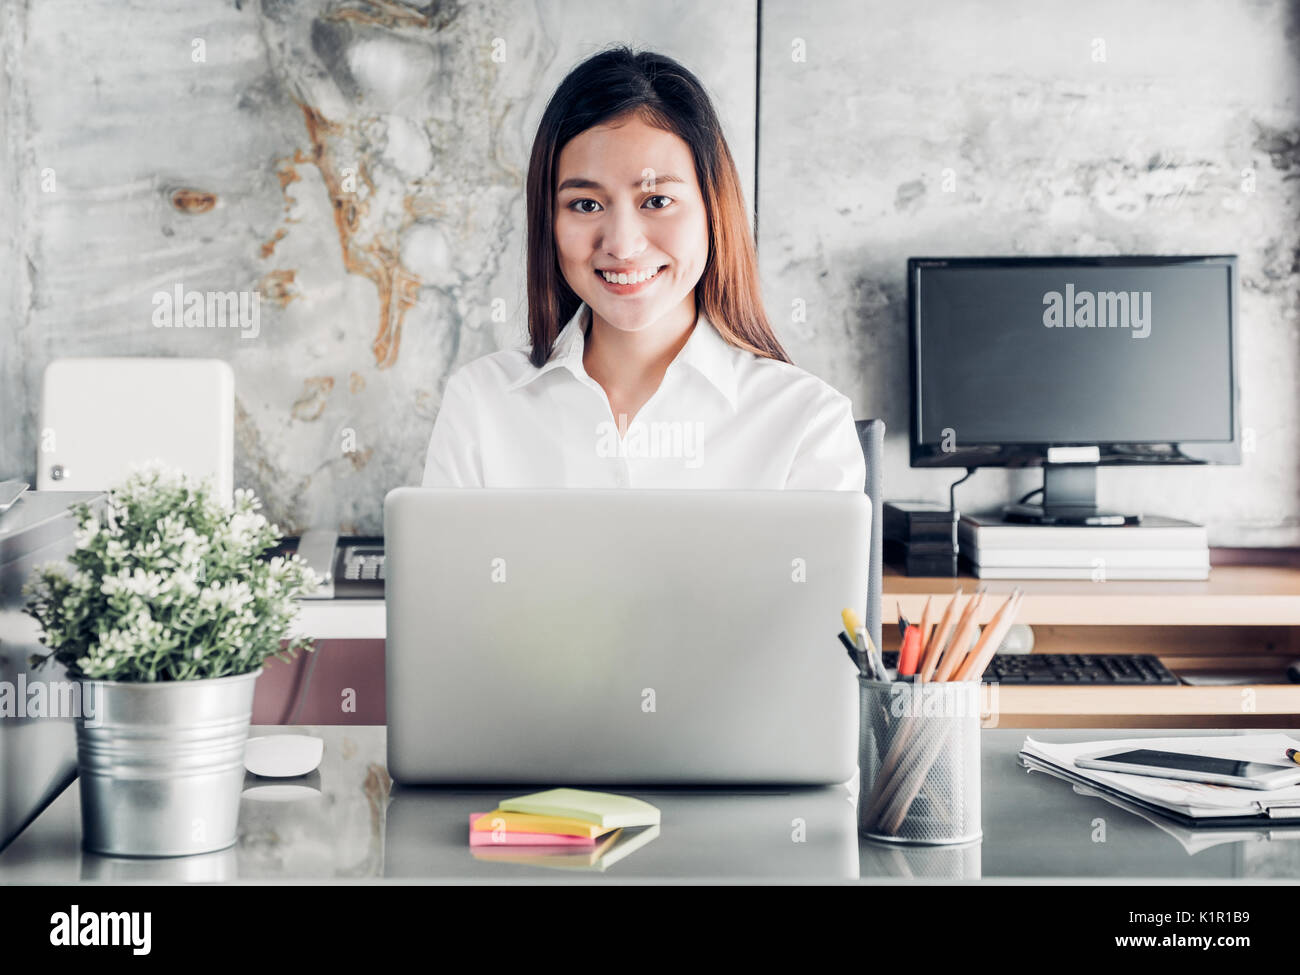 Asian businesswoman working with laptop computer on desk with smiling face,Happy office life concept,working woman at modern home office. - Stock Image